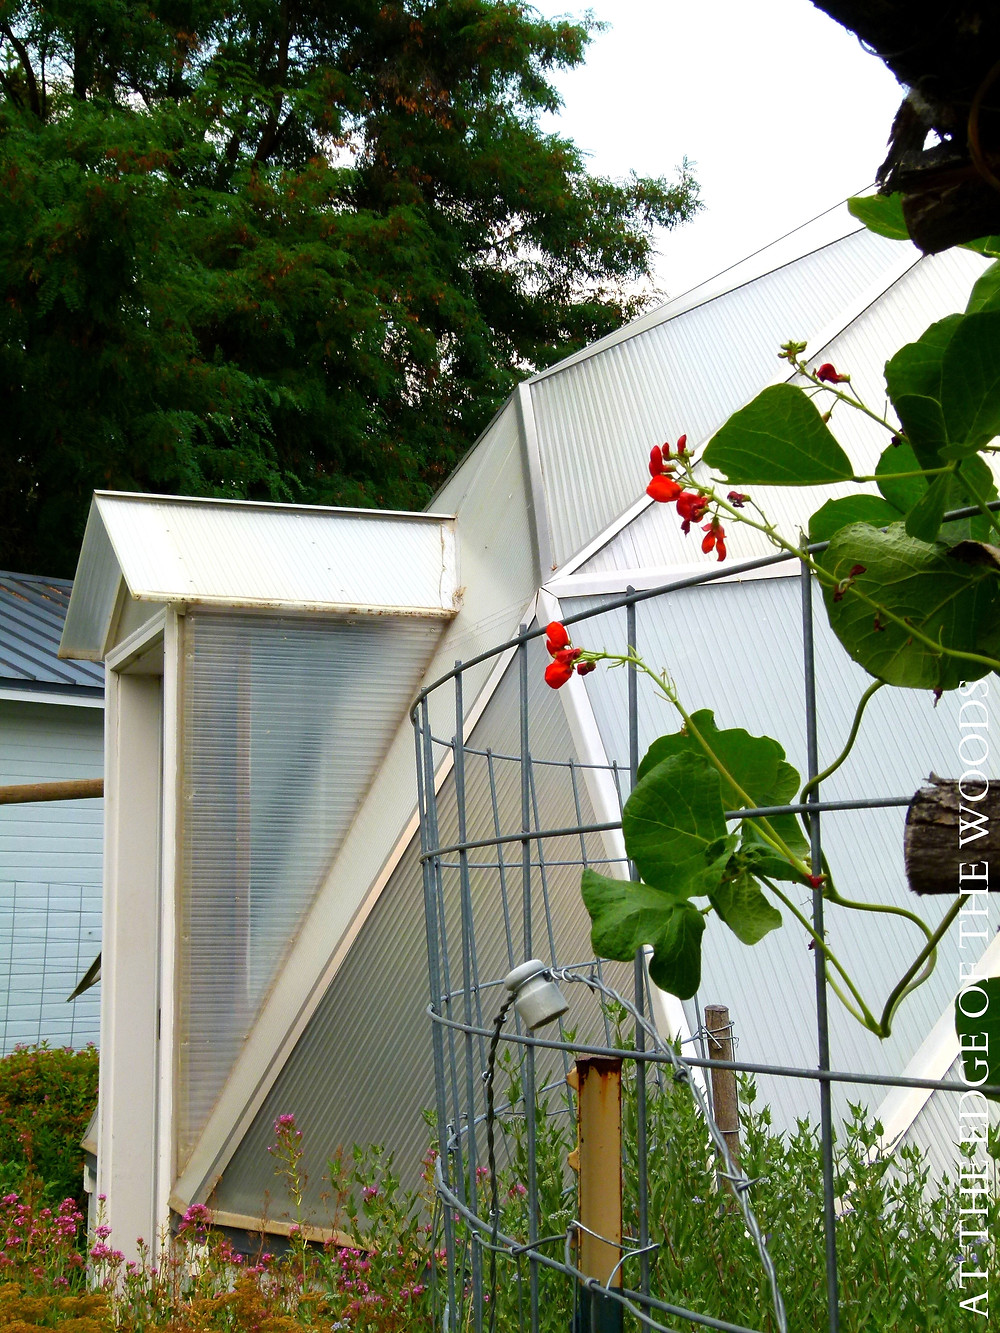 runner beans growing outside the greenhouse door